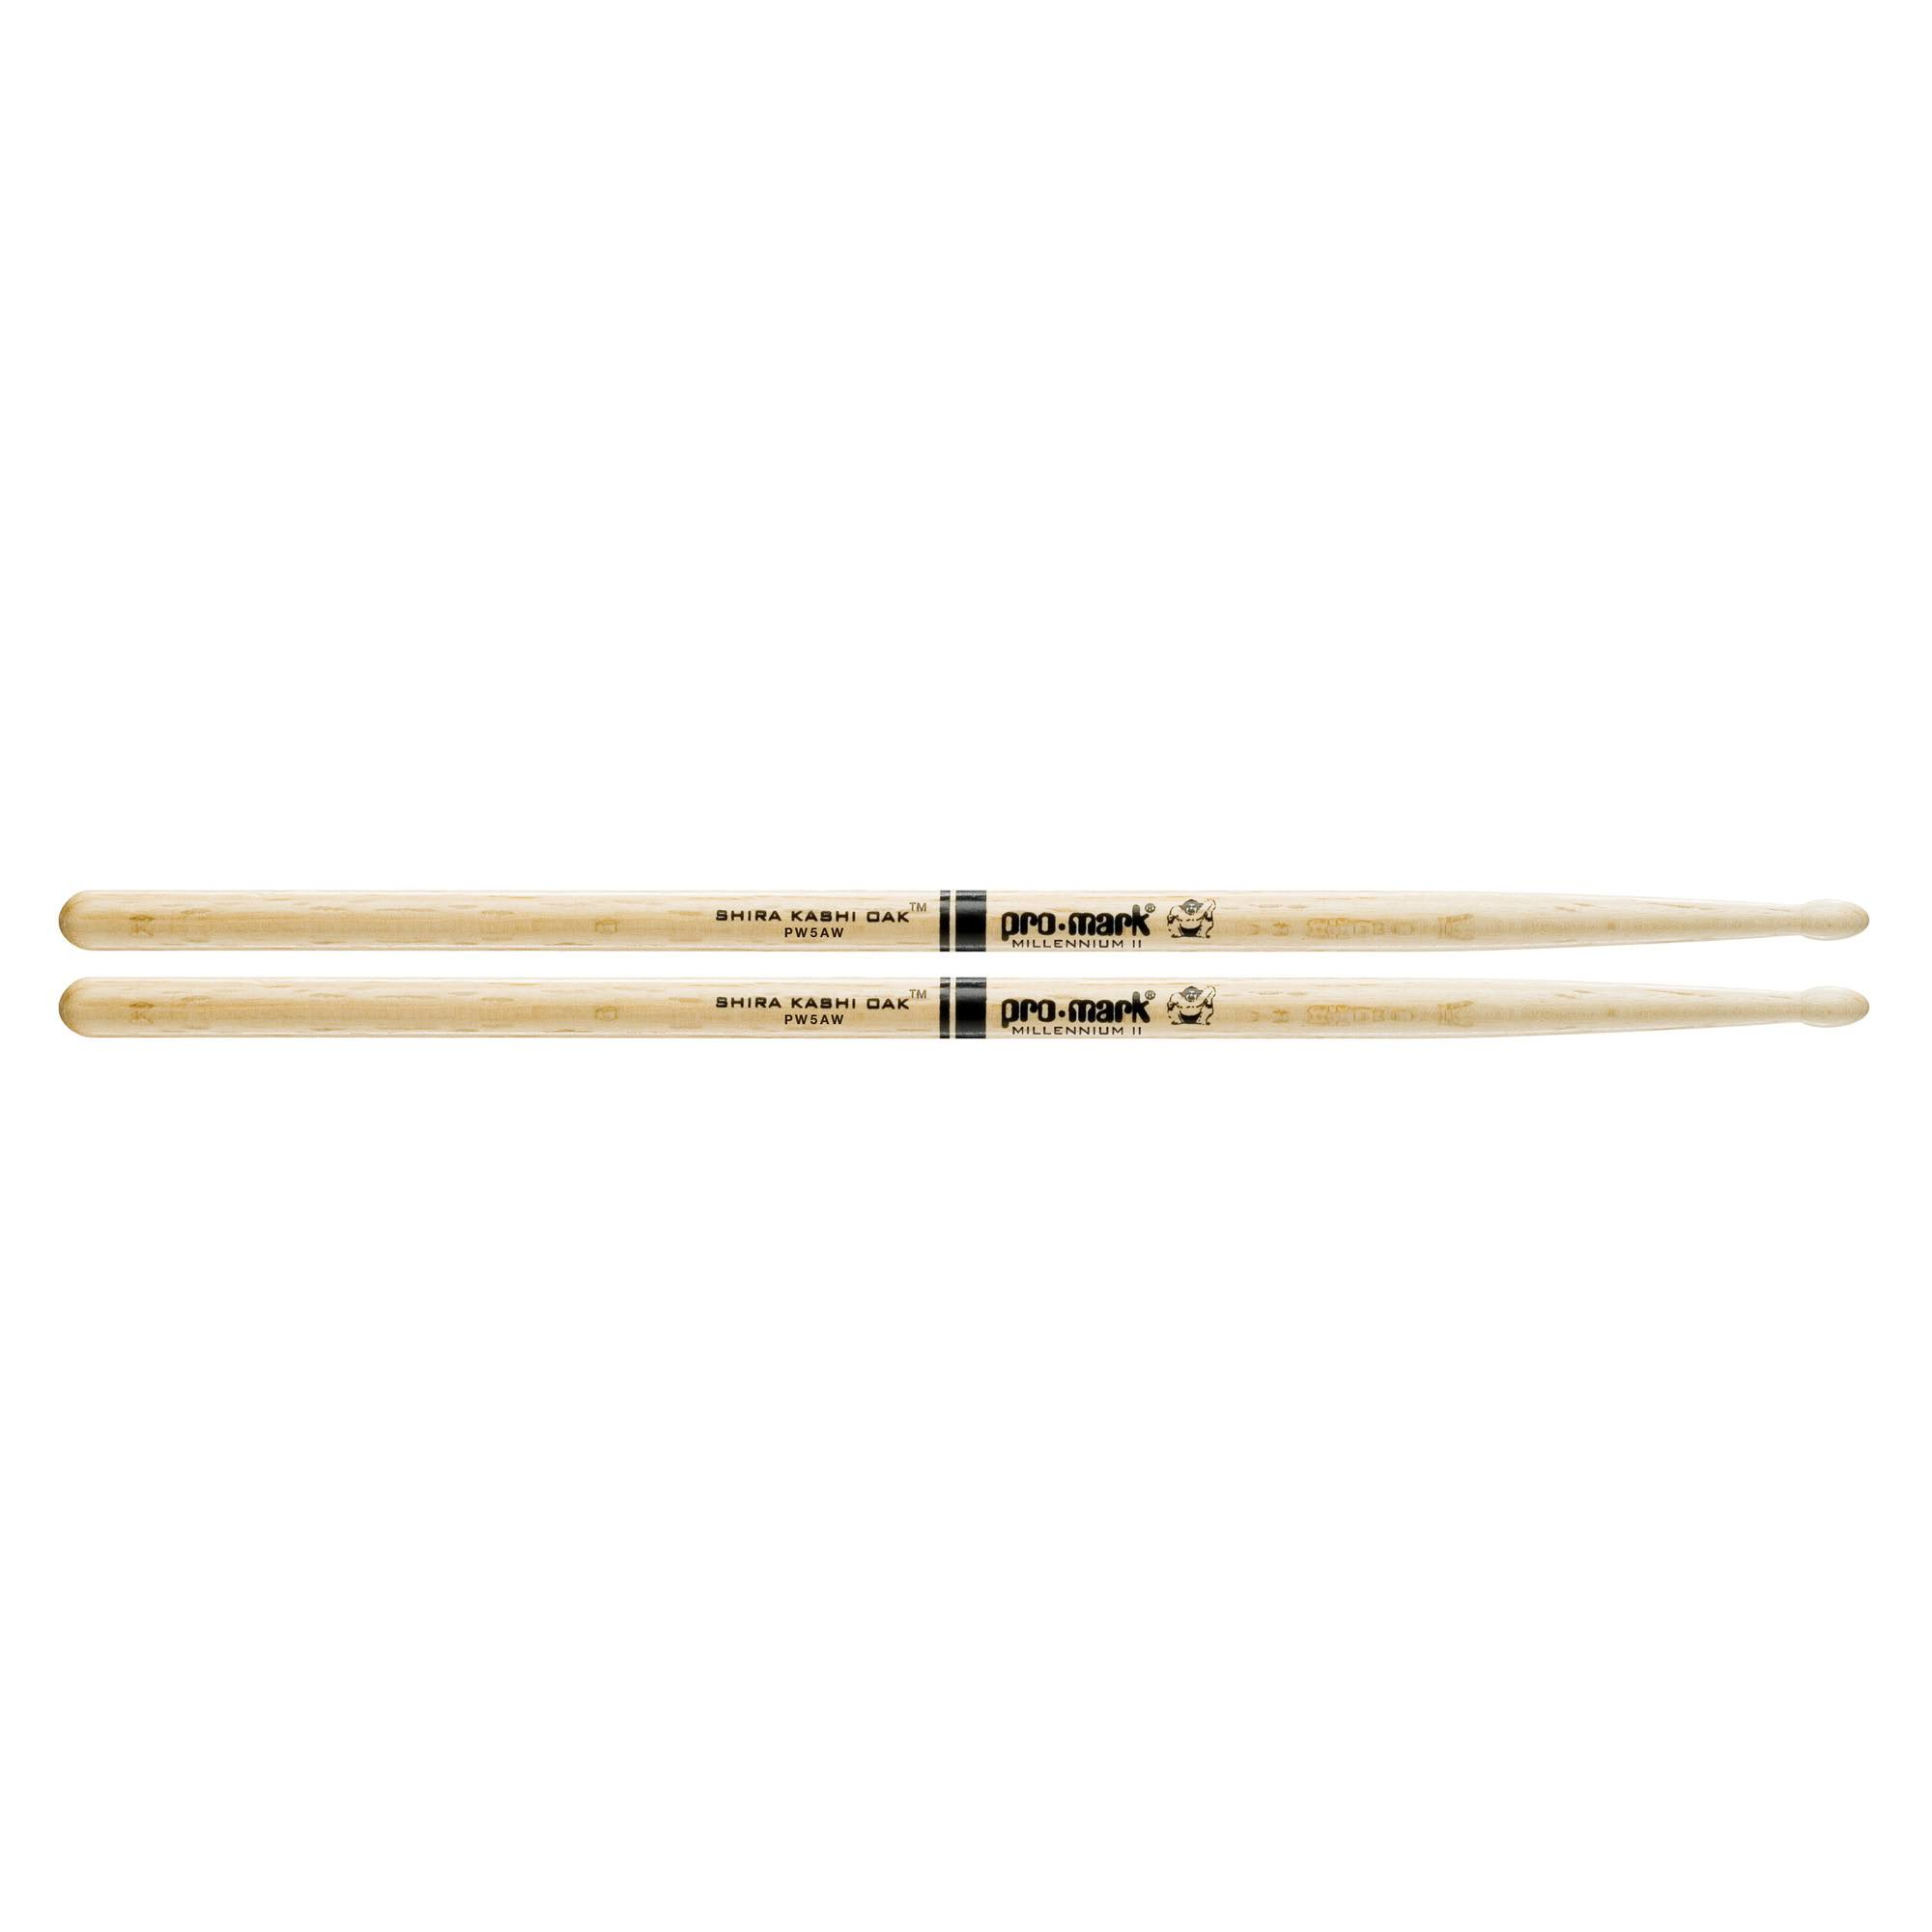 Pro Mark Japanese Shira Kashi White Oak 5A Wood Tip Drumsticks - Single Pair